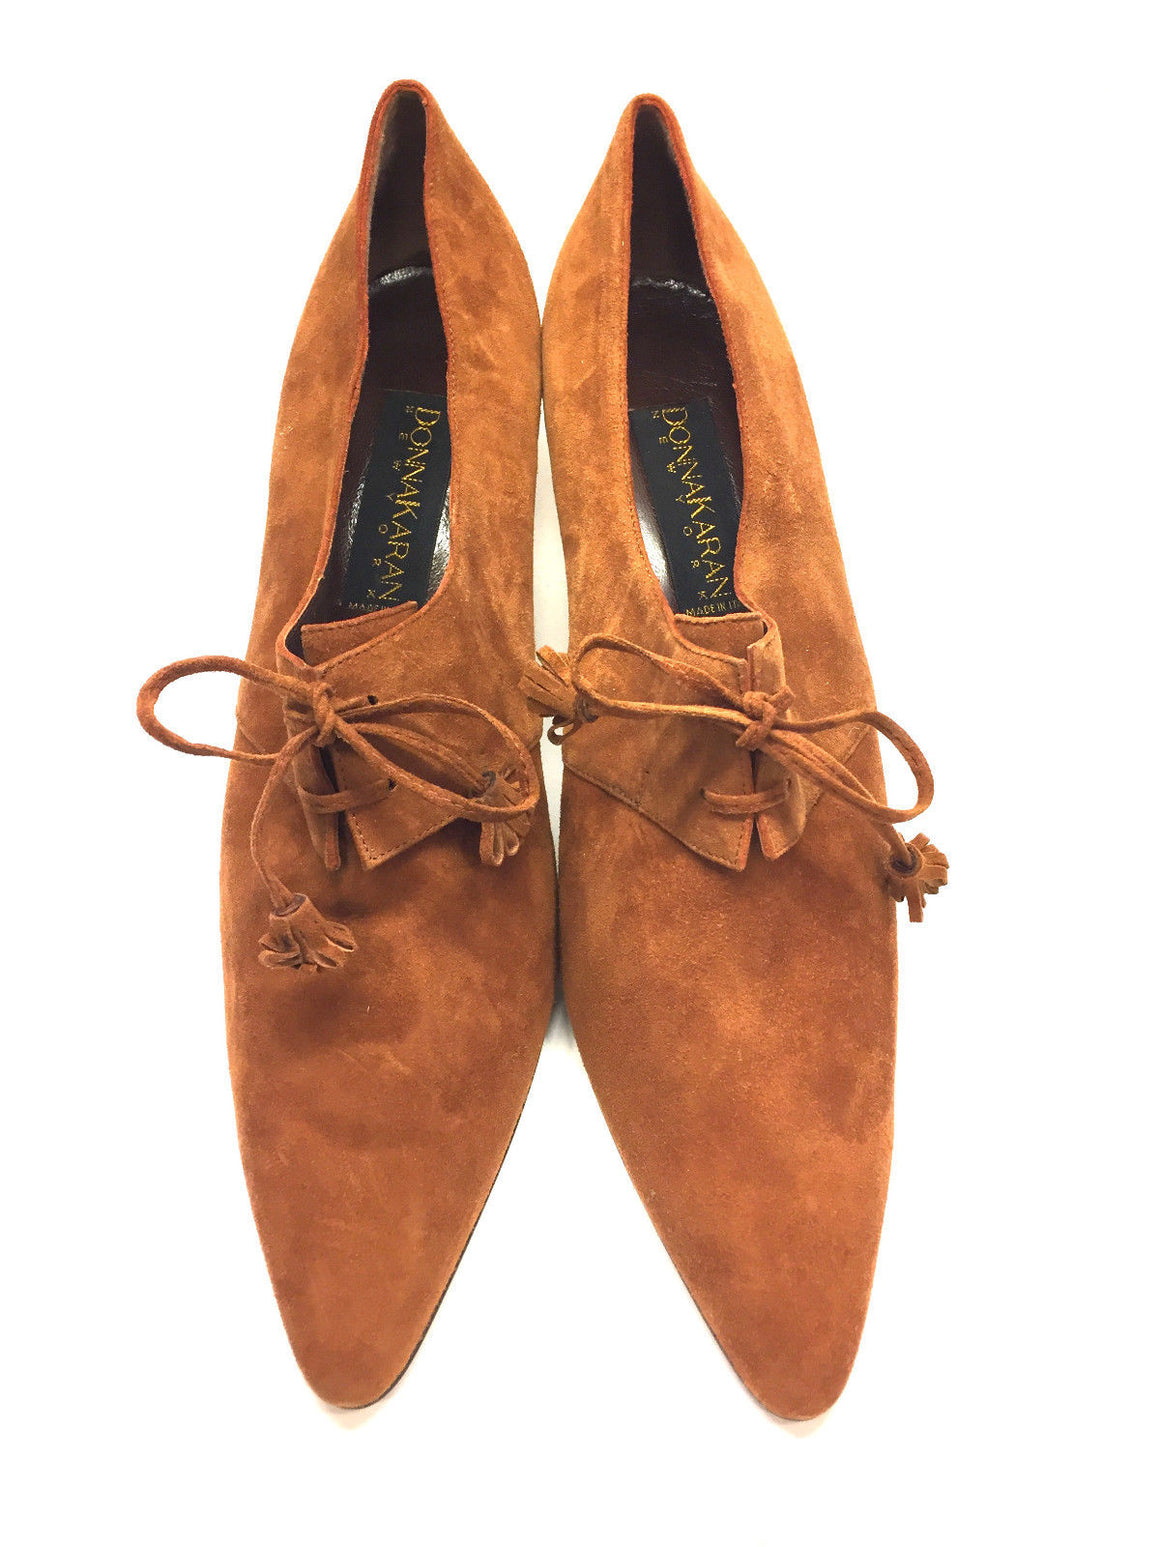 bisbiz.com DONNA KARAN Vintage New Honey Suede Pointed-Toe Lace-Up Heel Pumps Size: 11 - Bis Luxury Resale